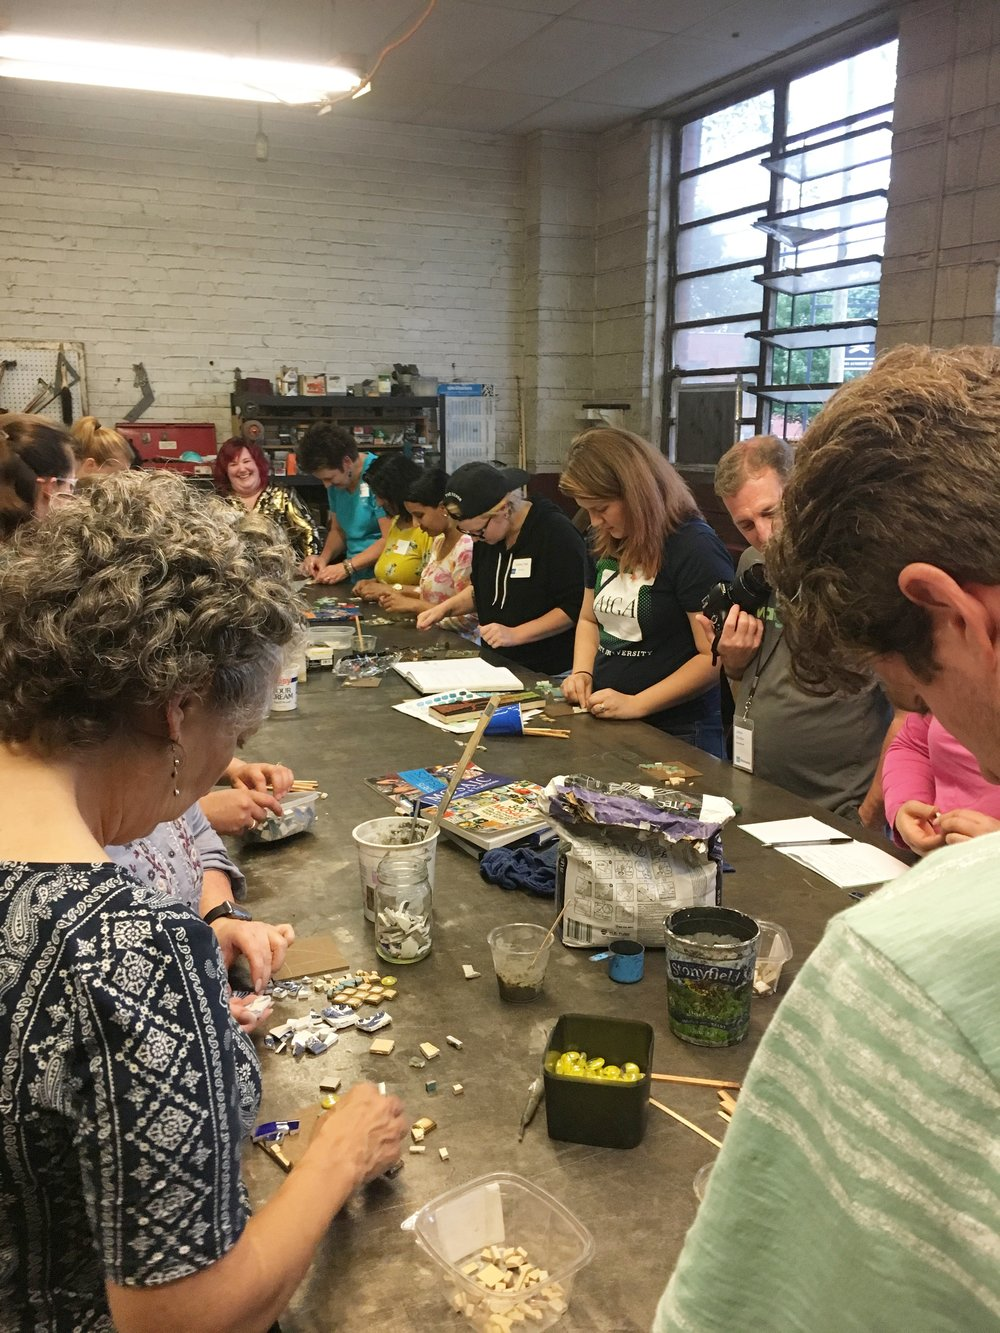 Mosaic workshop participants hard at work